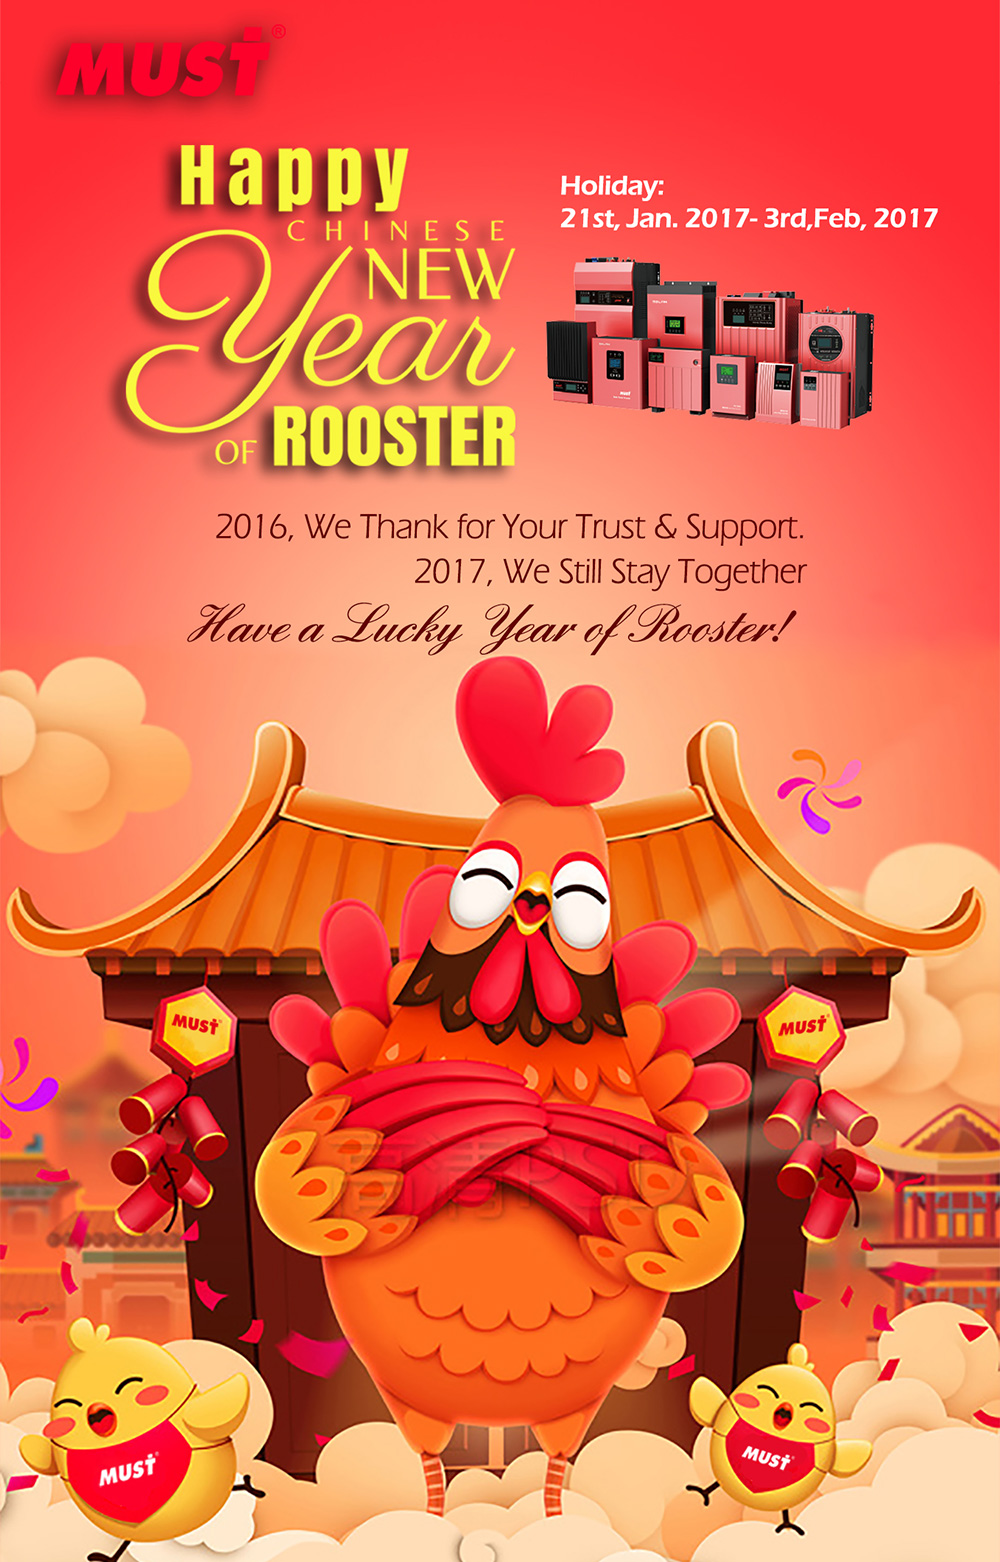 The-Year-of-Rooster-Holiday